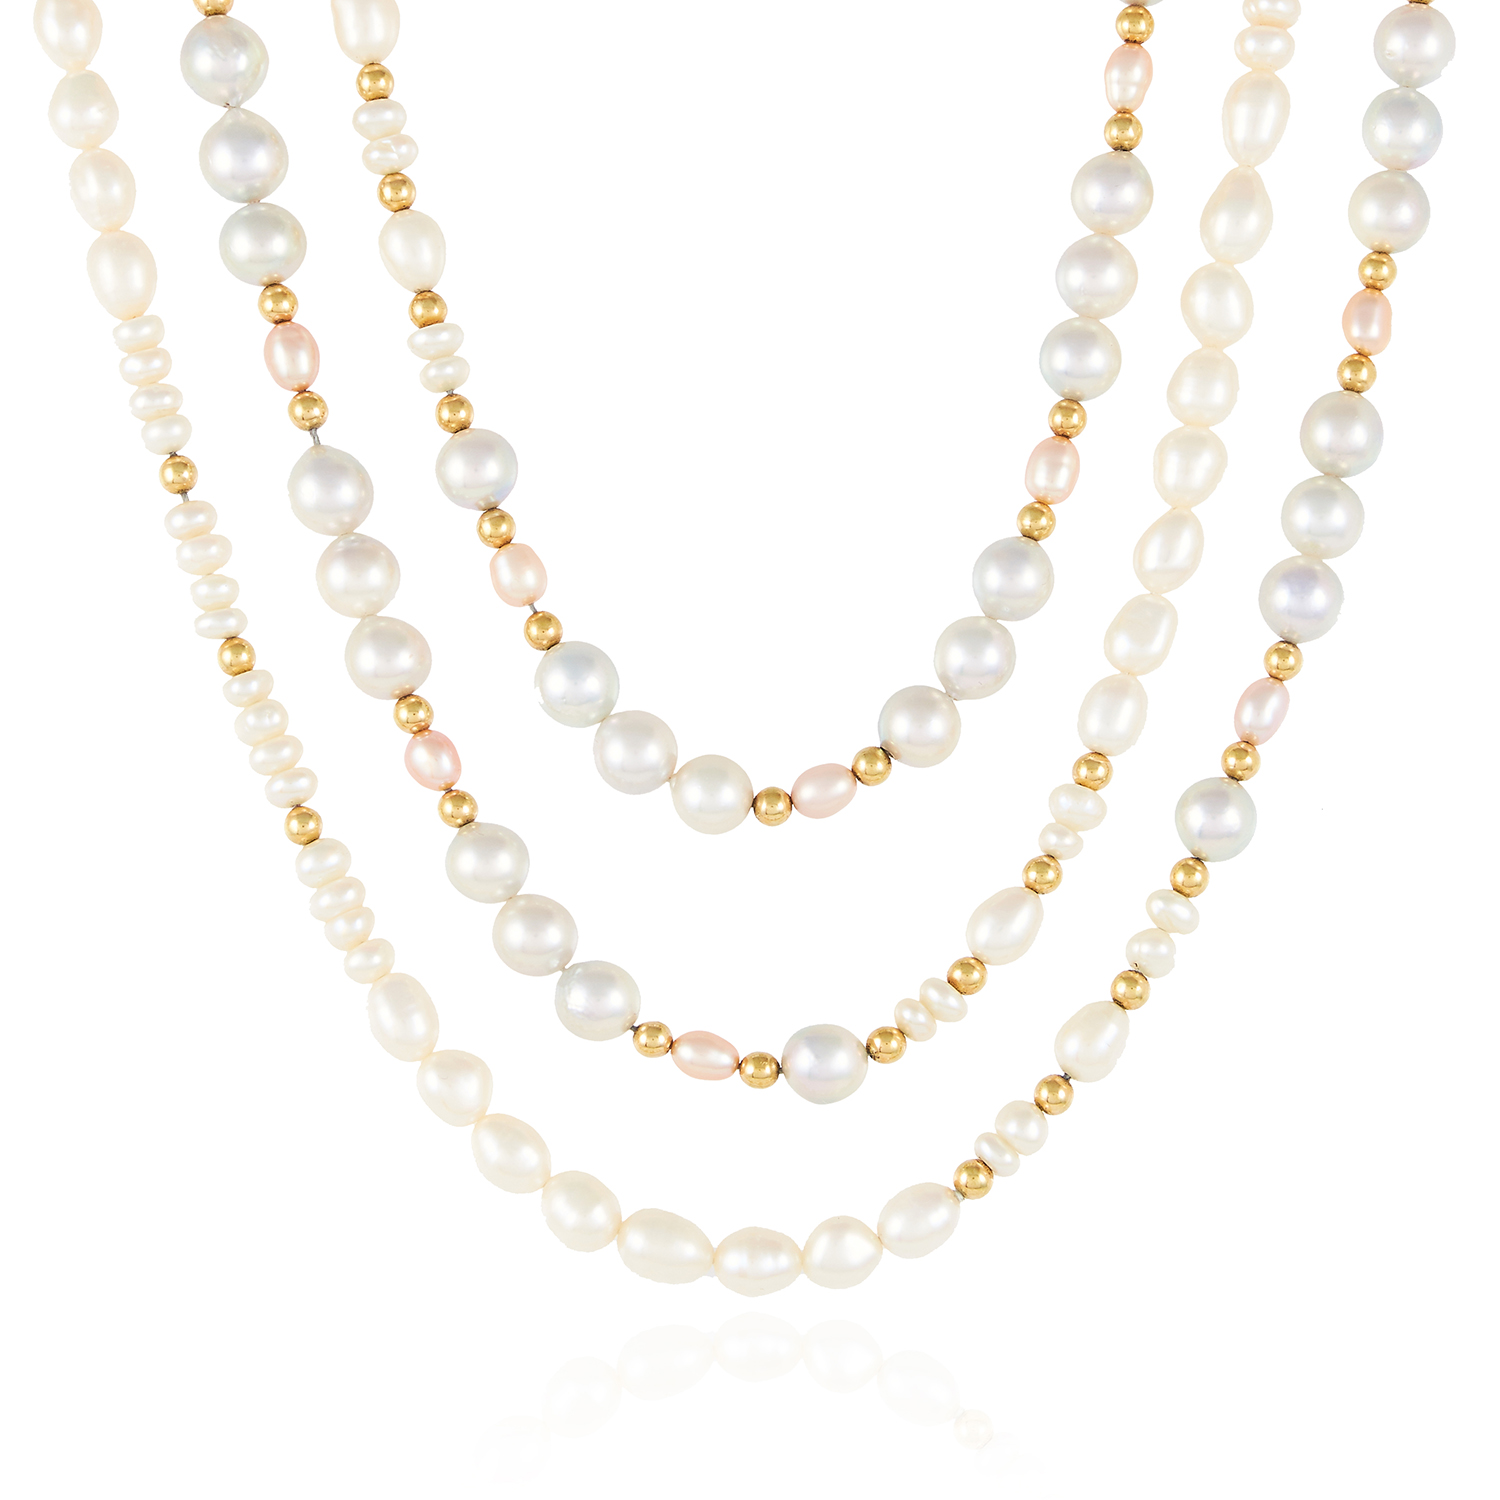 A PEARL AND GOLD BEAD SAUTOIR NECKLACE in high carat yellow gold, designed as a very long row of